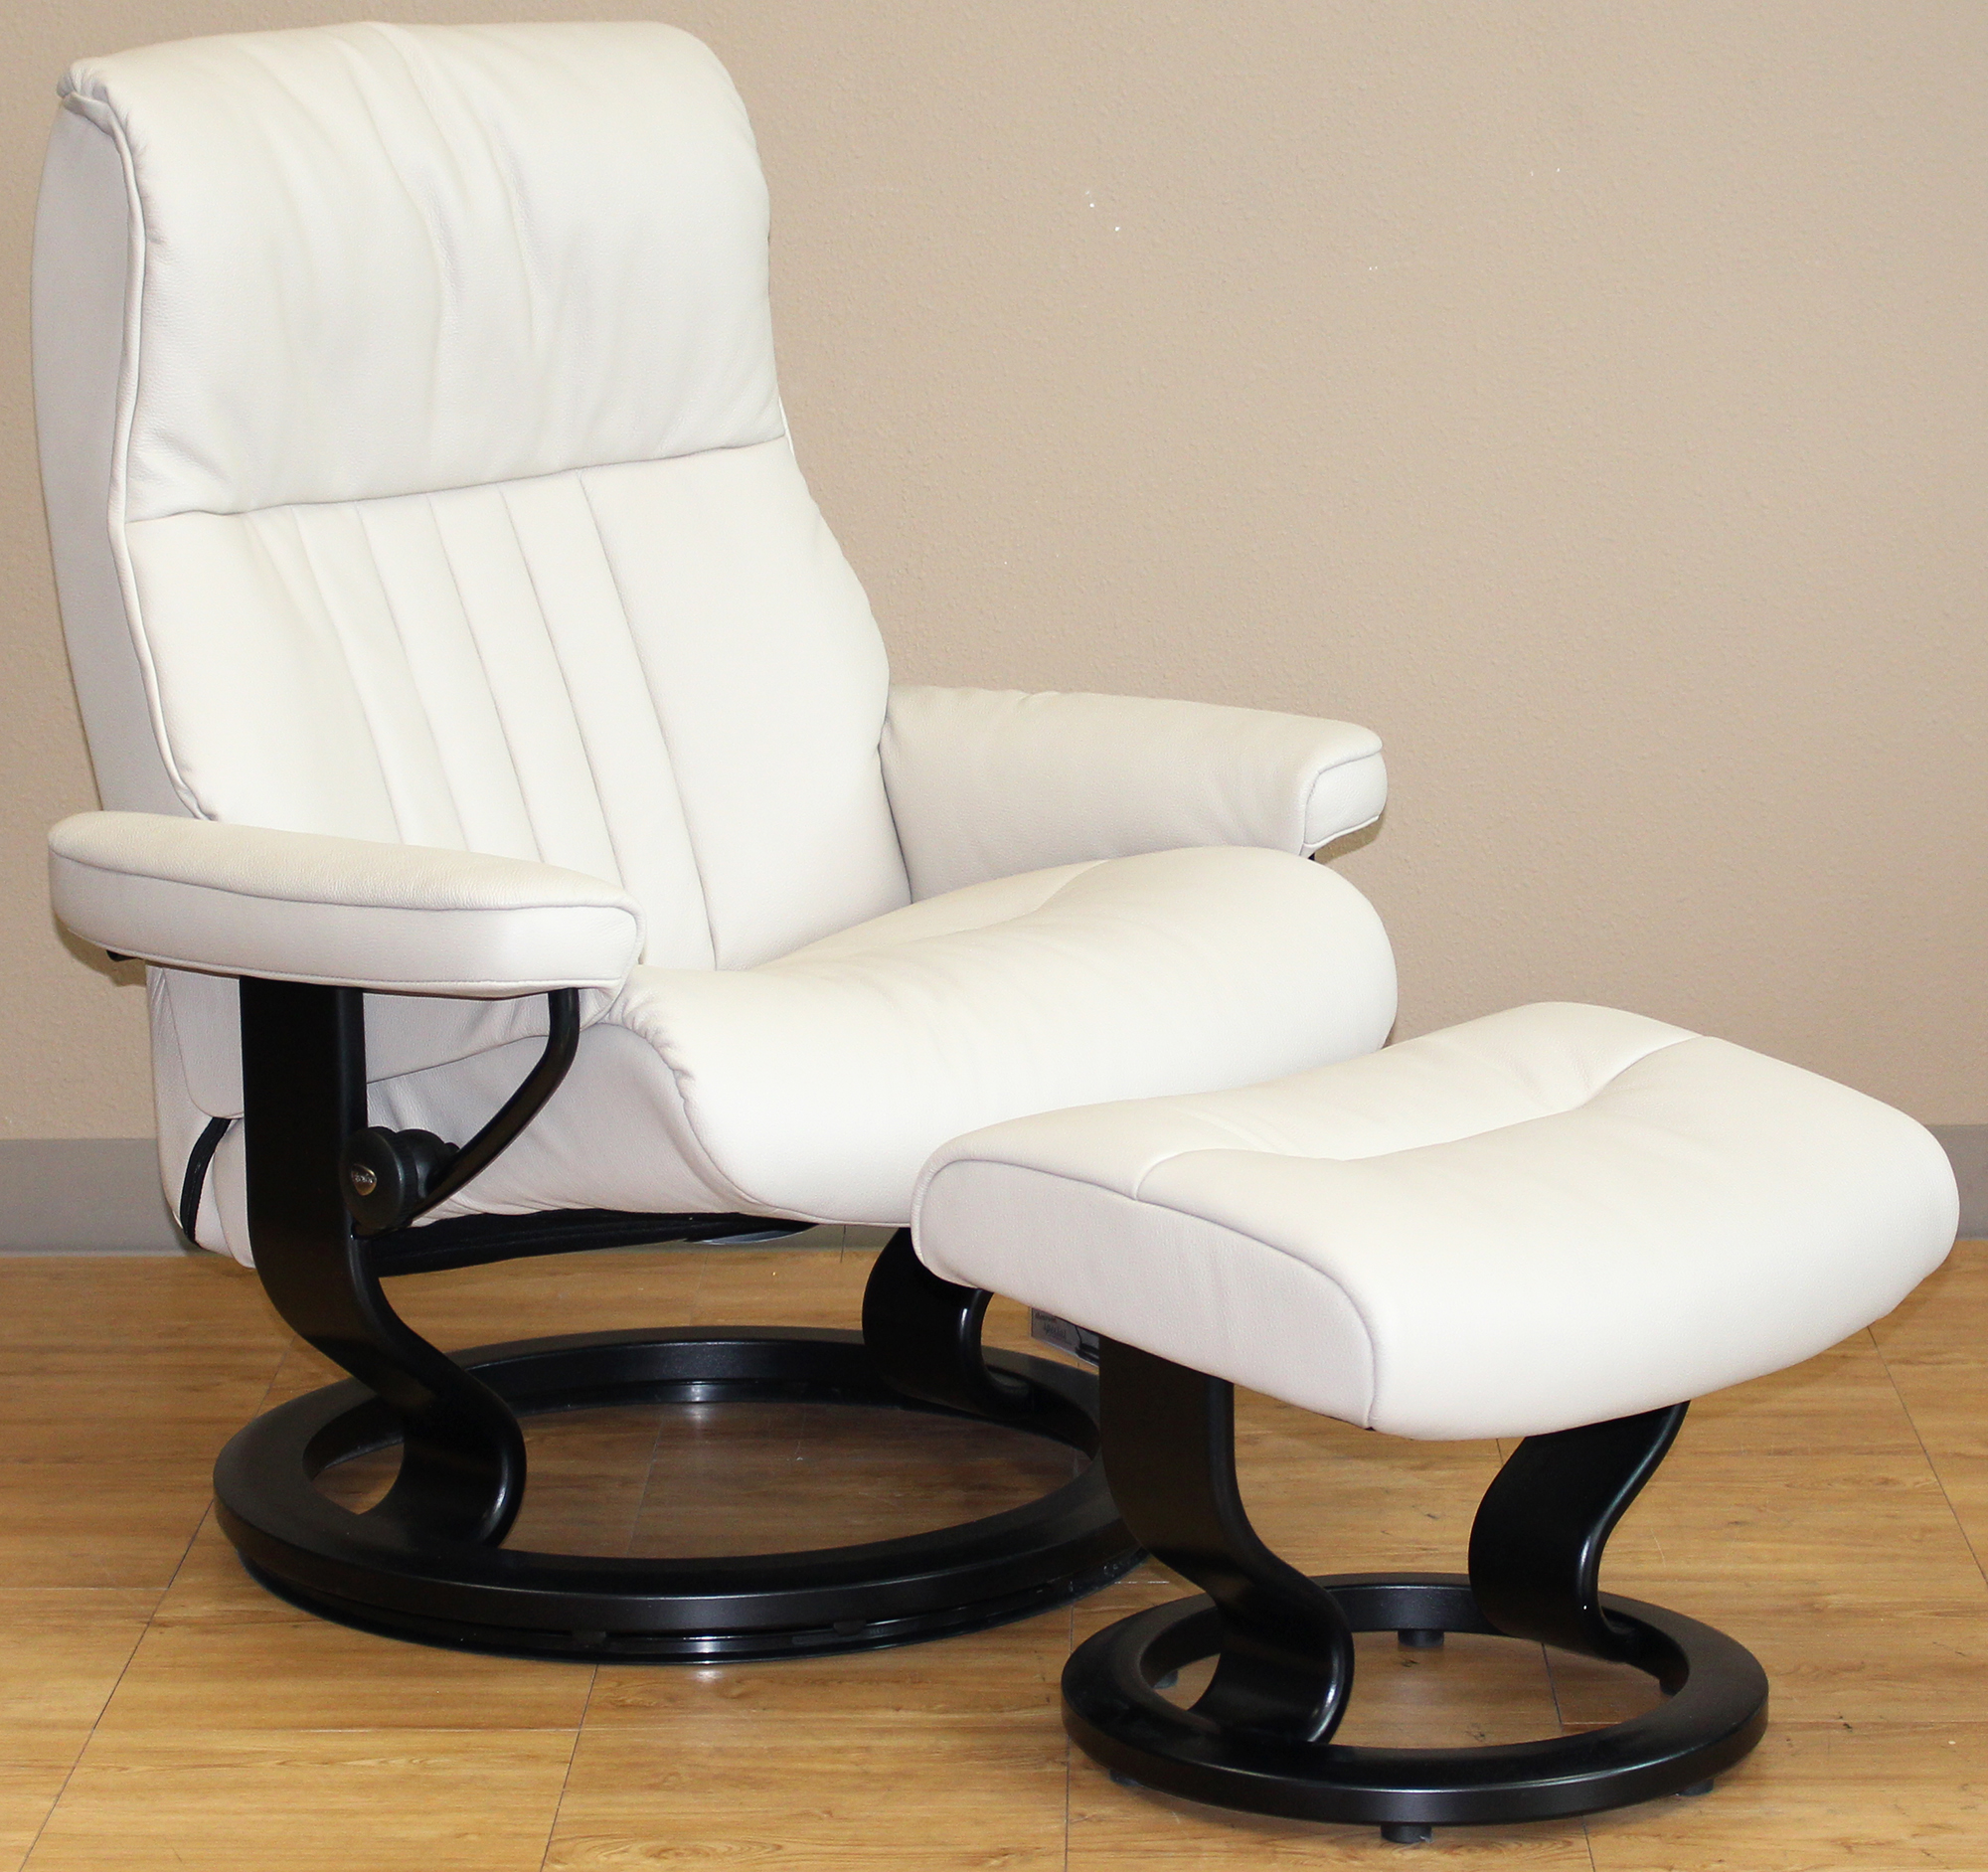 Stressless crown cori vanilla white leather recliner chair for Chair recliner